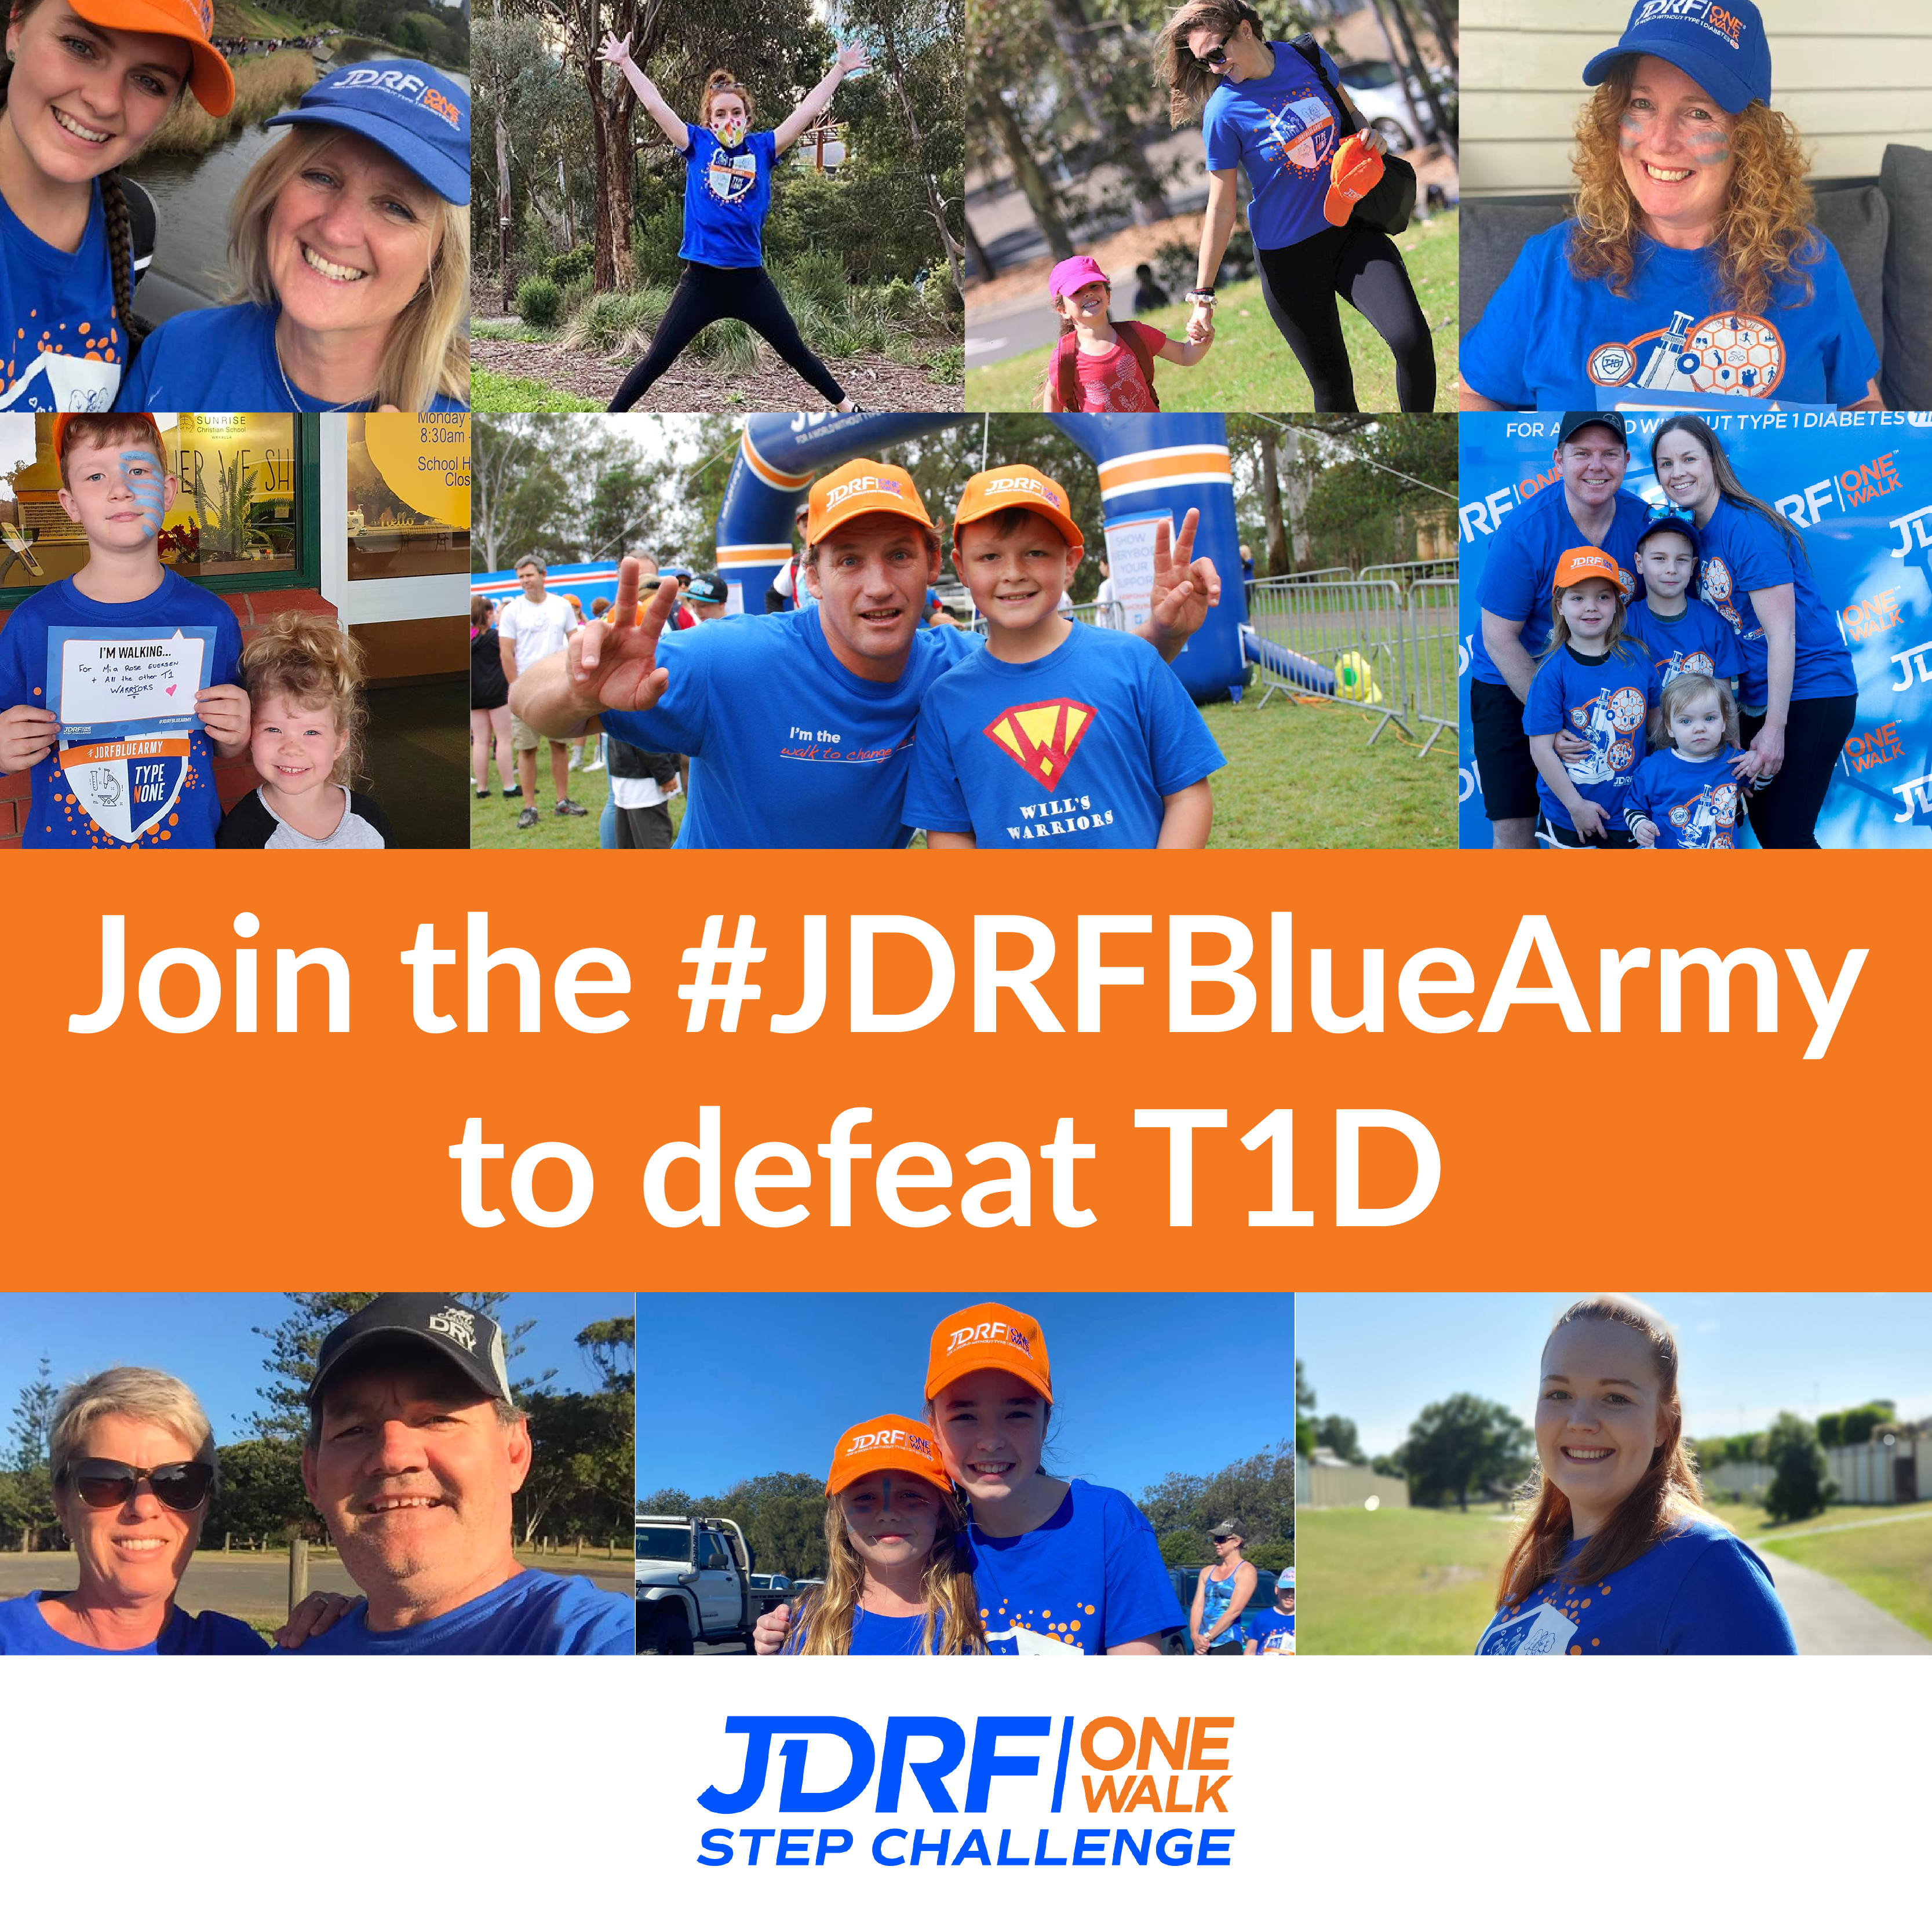 Join the JDRF Blue Army